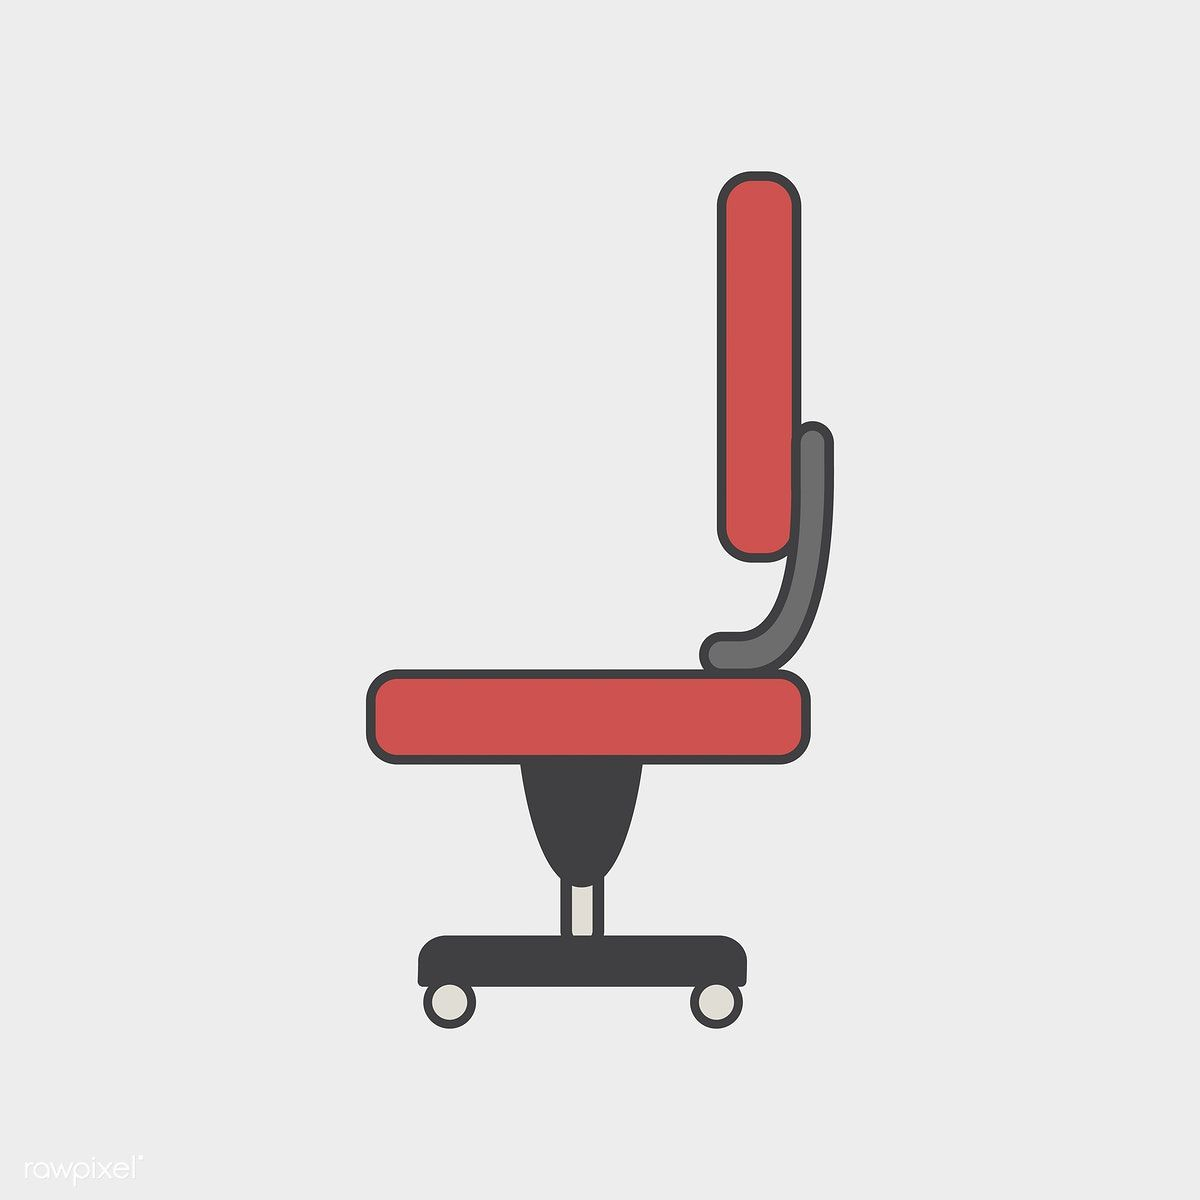 illustration of office chair icon free image by rawpixel com rh pinterest com Office Chair Clip Art Industrial Desk Icon